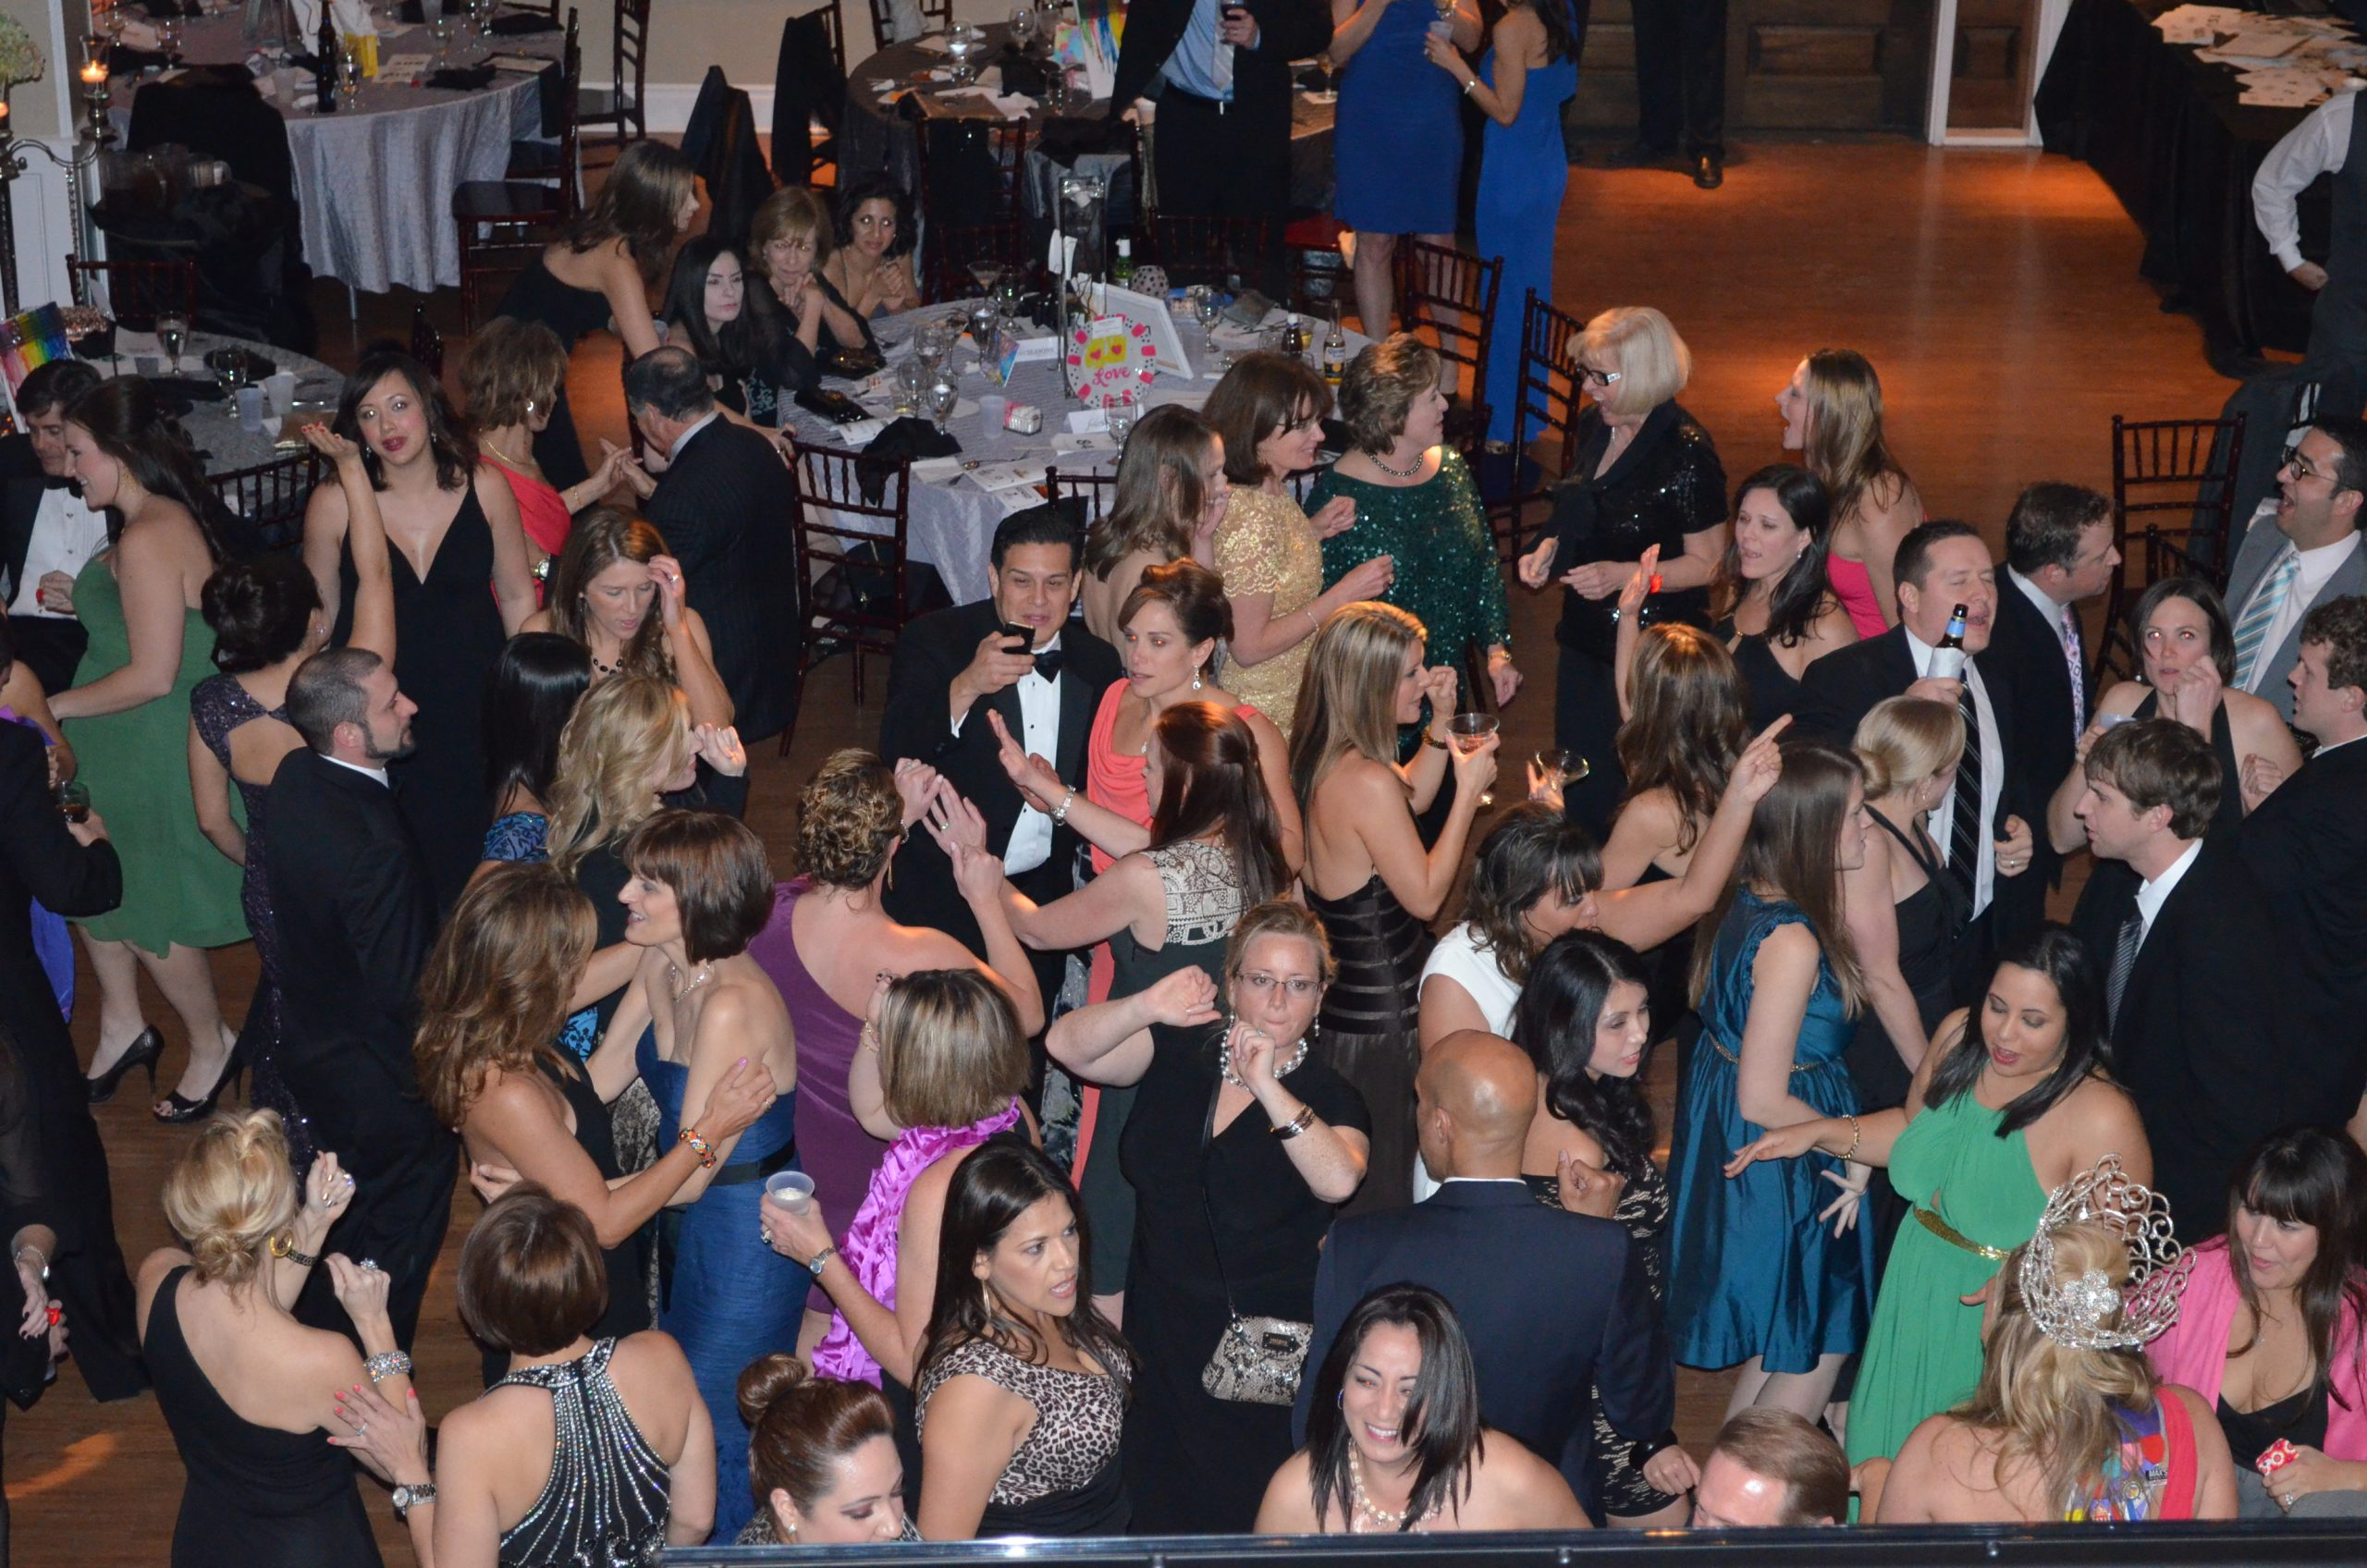 Brighton Center hosted The Queen's Ball - The Culmination event for the 11th Annual Queen of the Vine Campaign. The campaign raised more than $184,000 in February 2013 for the children with disabilities that Brighton serves. Photo courtesy of the Brighton Center.